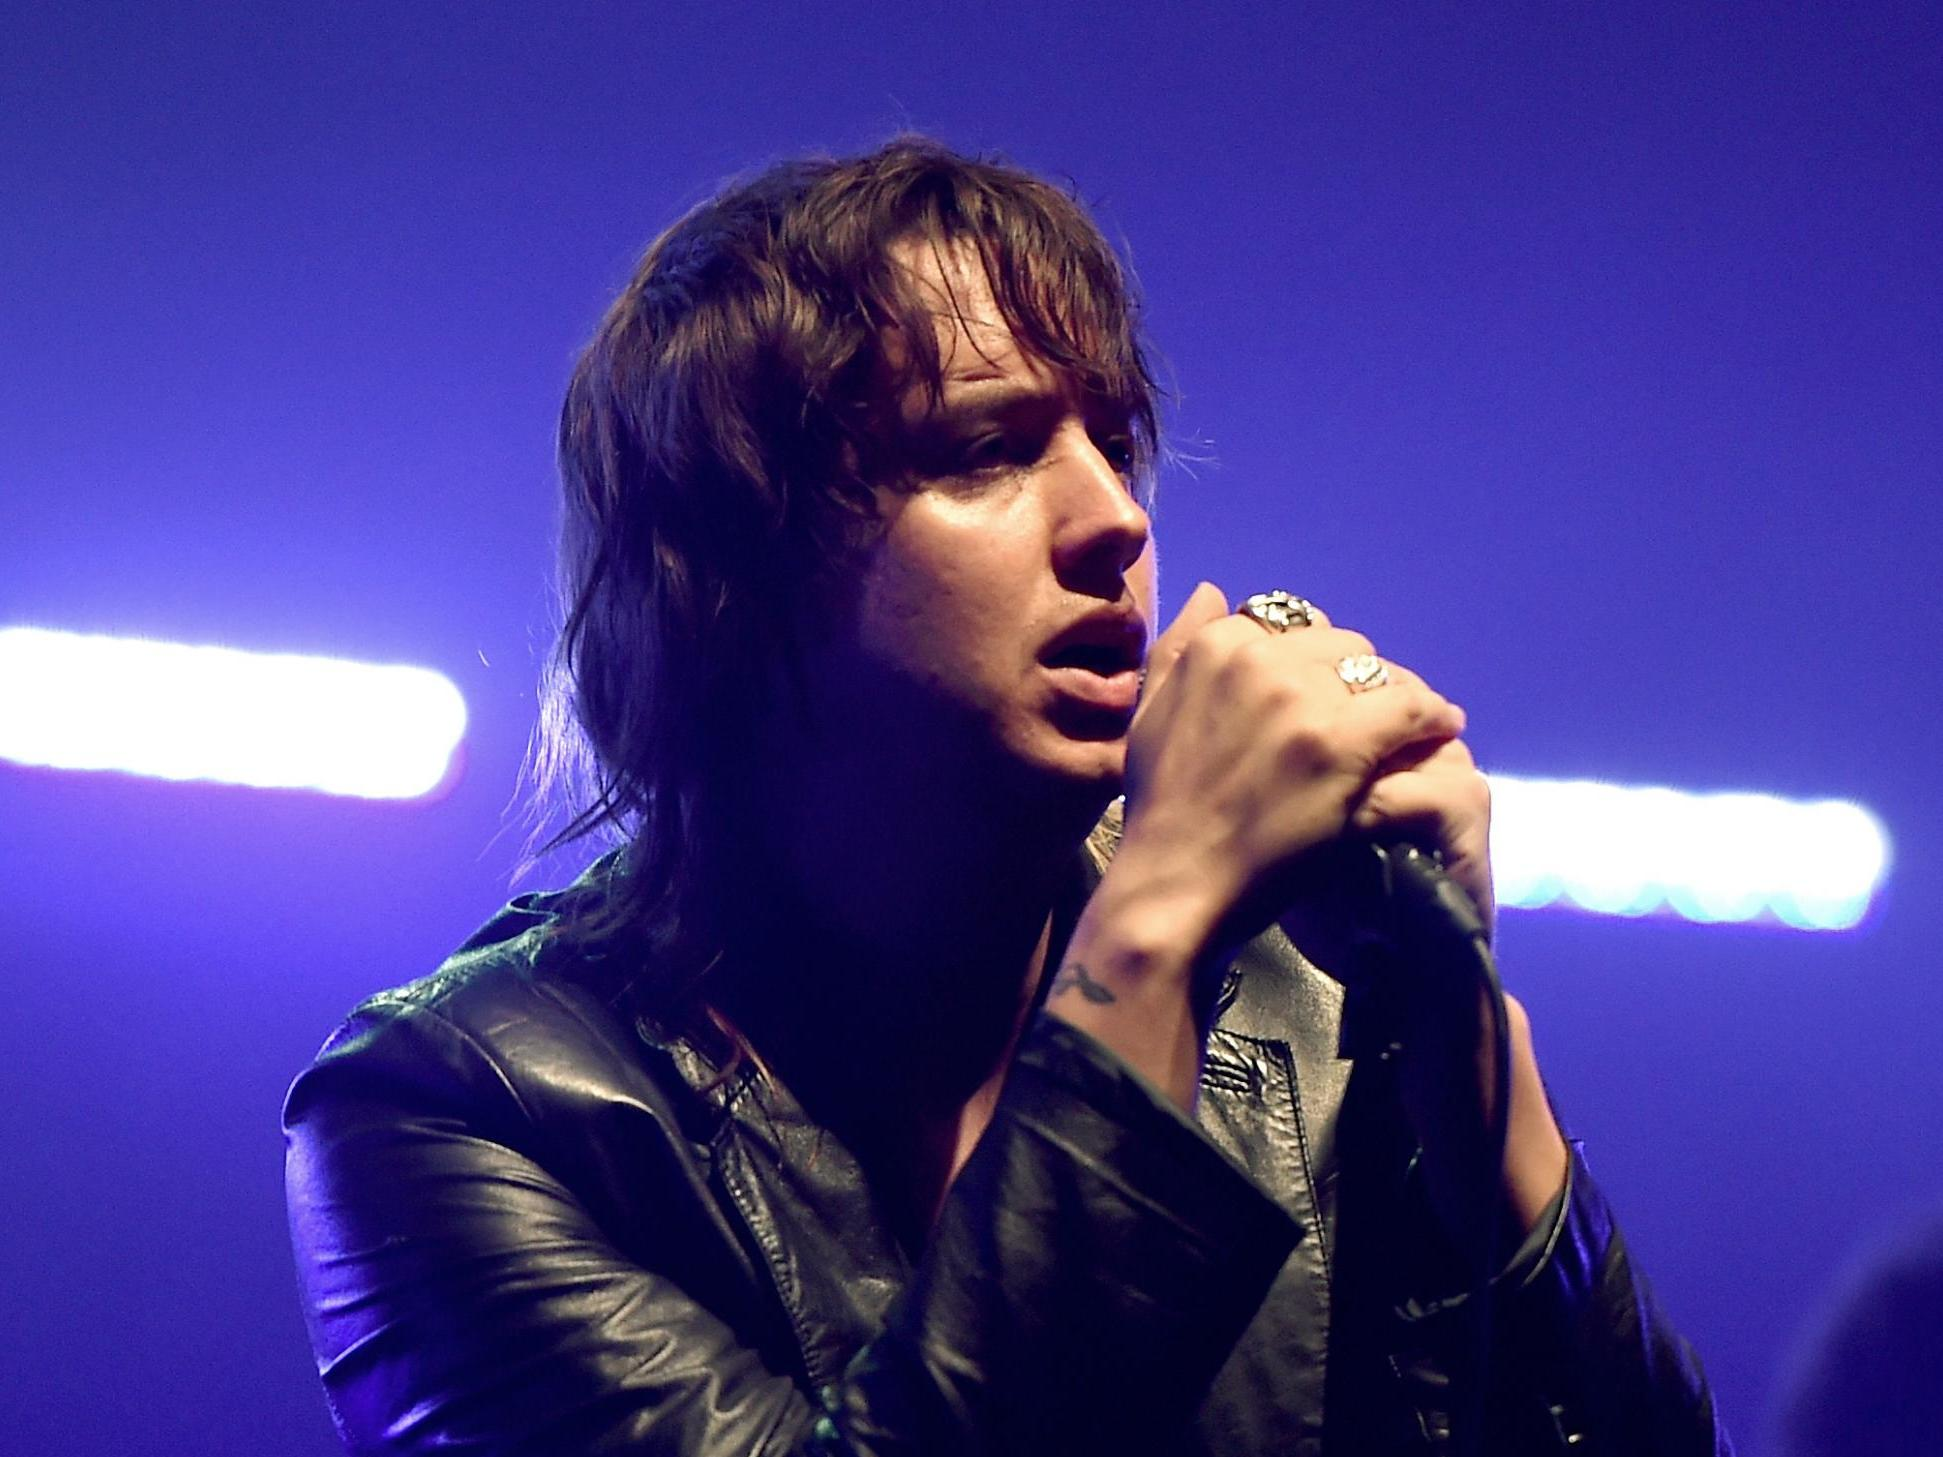 Nos Alive 2020: The Strokes join Taylor Swift and Kendrick Lamar as headliners